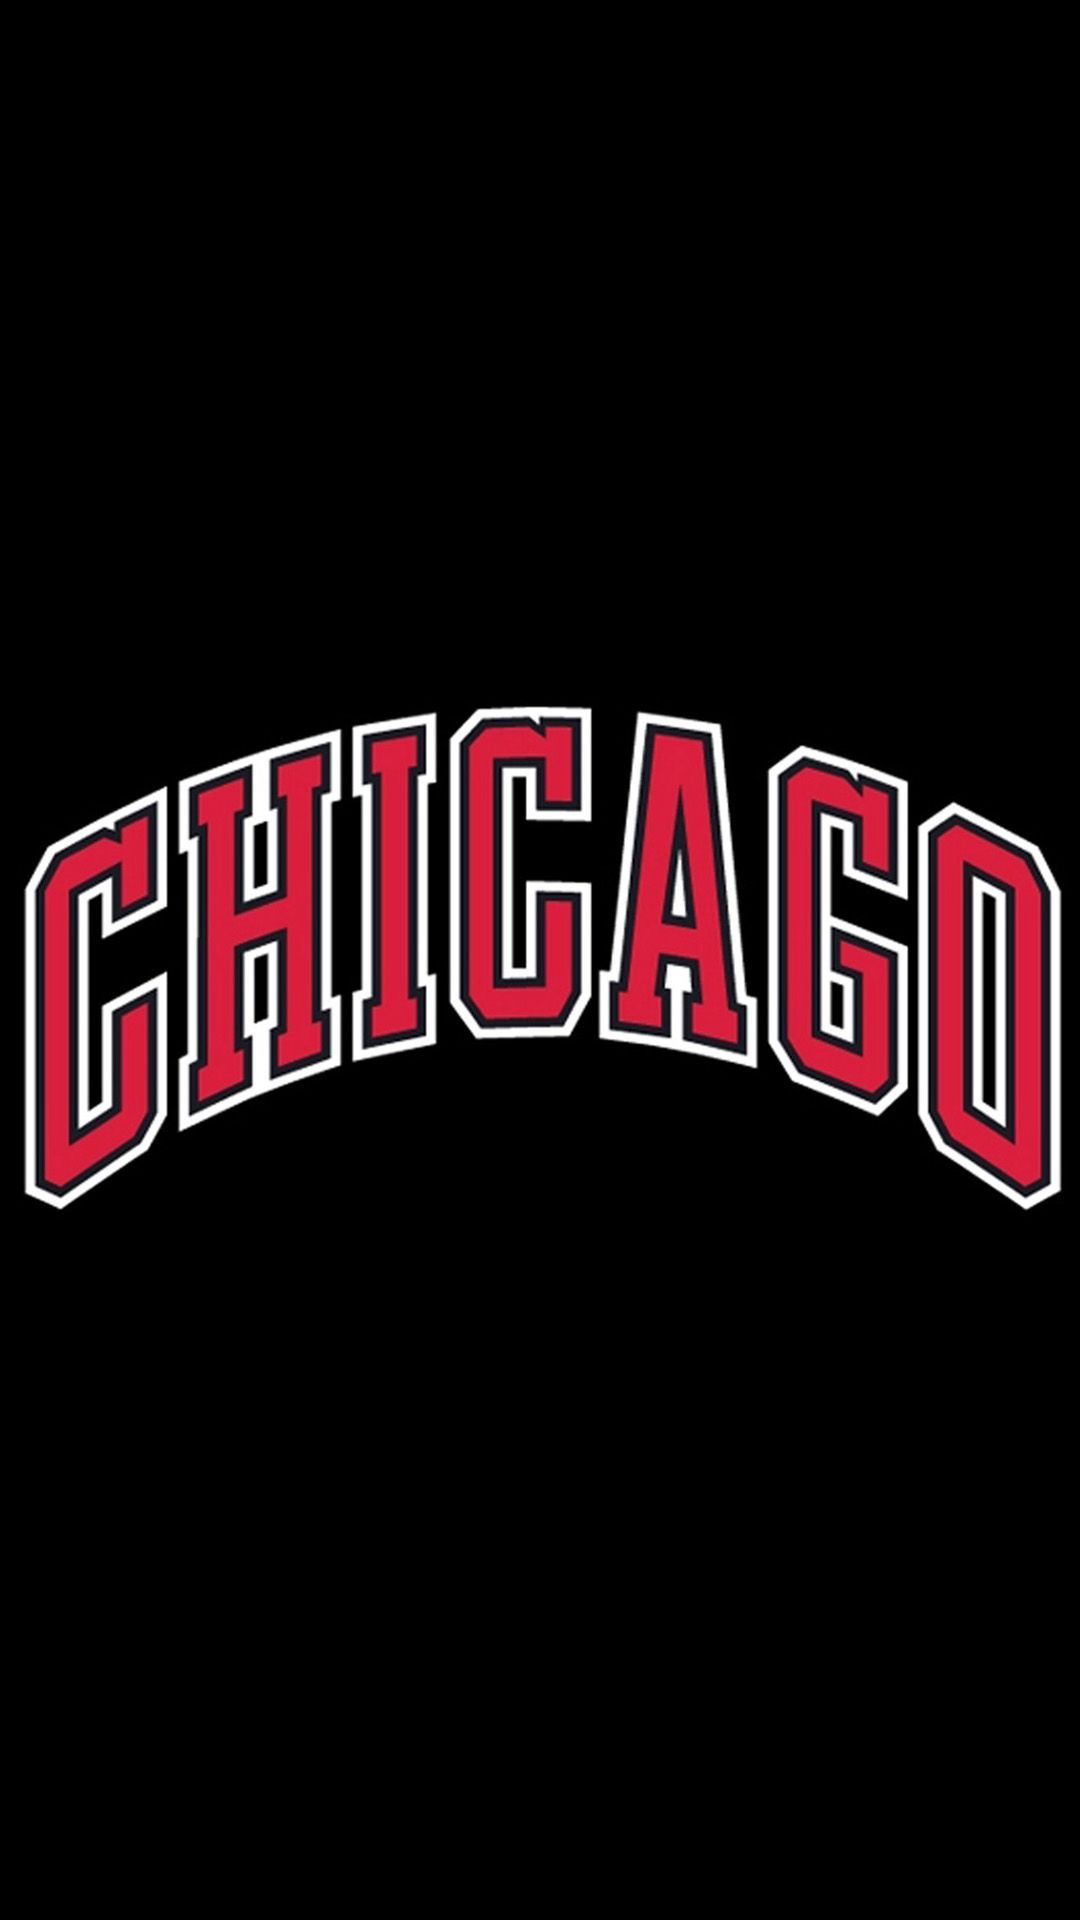 chicago bulls iphone wallpaper | chicago bulls | pinterest | chicago